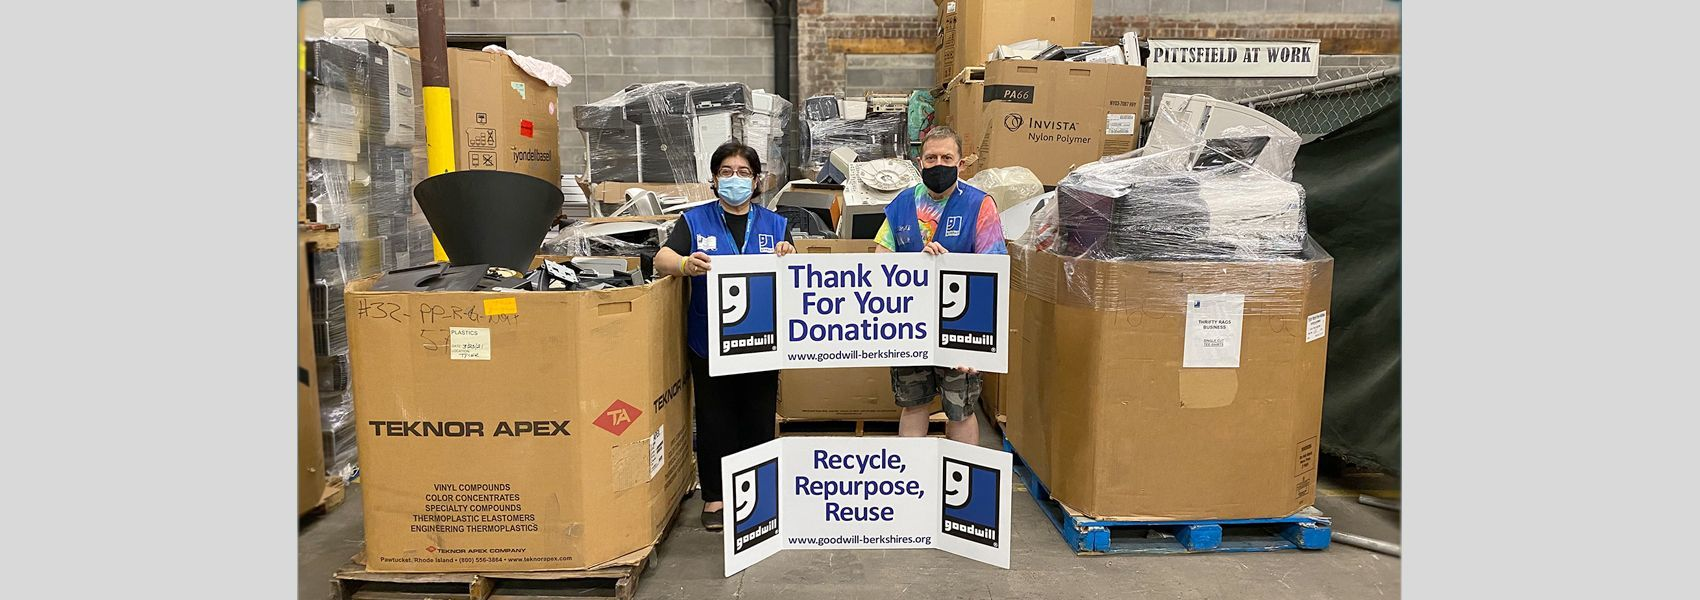 Over 12,000 lbs. of E-Waste kept from landfills on Earth Day 2021!